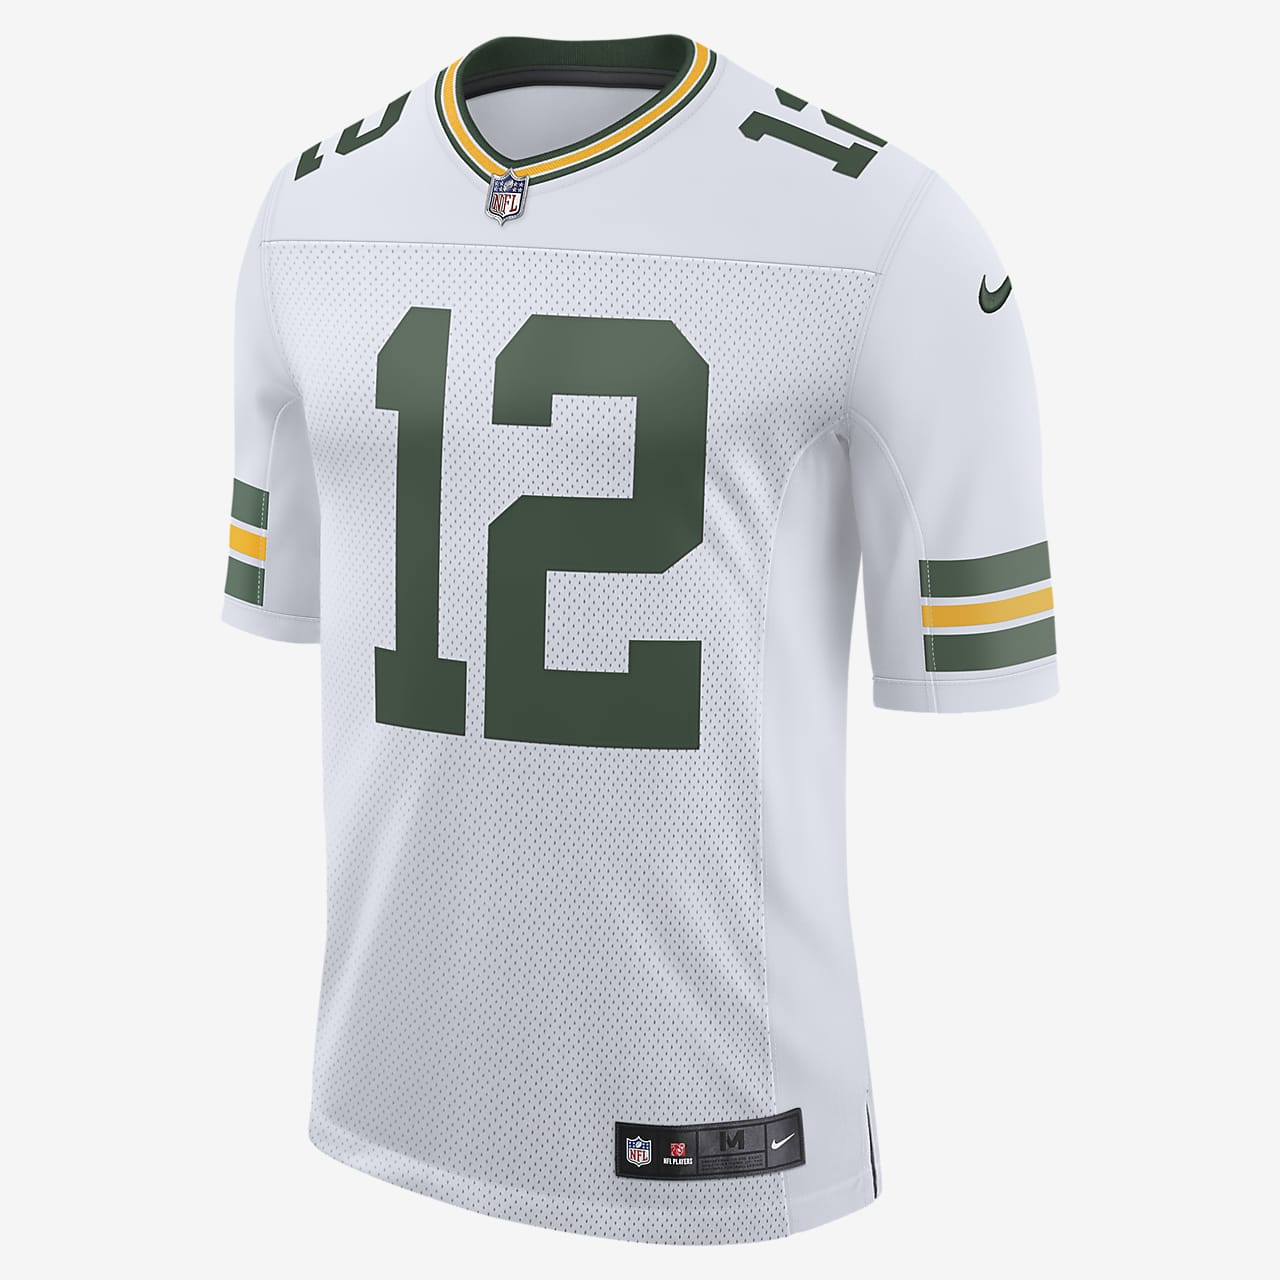 8c38ddac NFL Green Bay Packers Limited (Aaron Rodgers) Men's Football Jersey